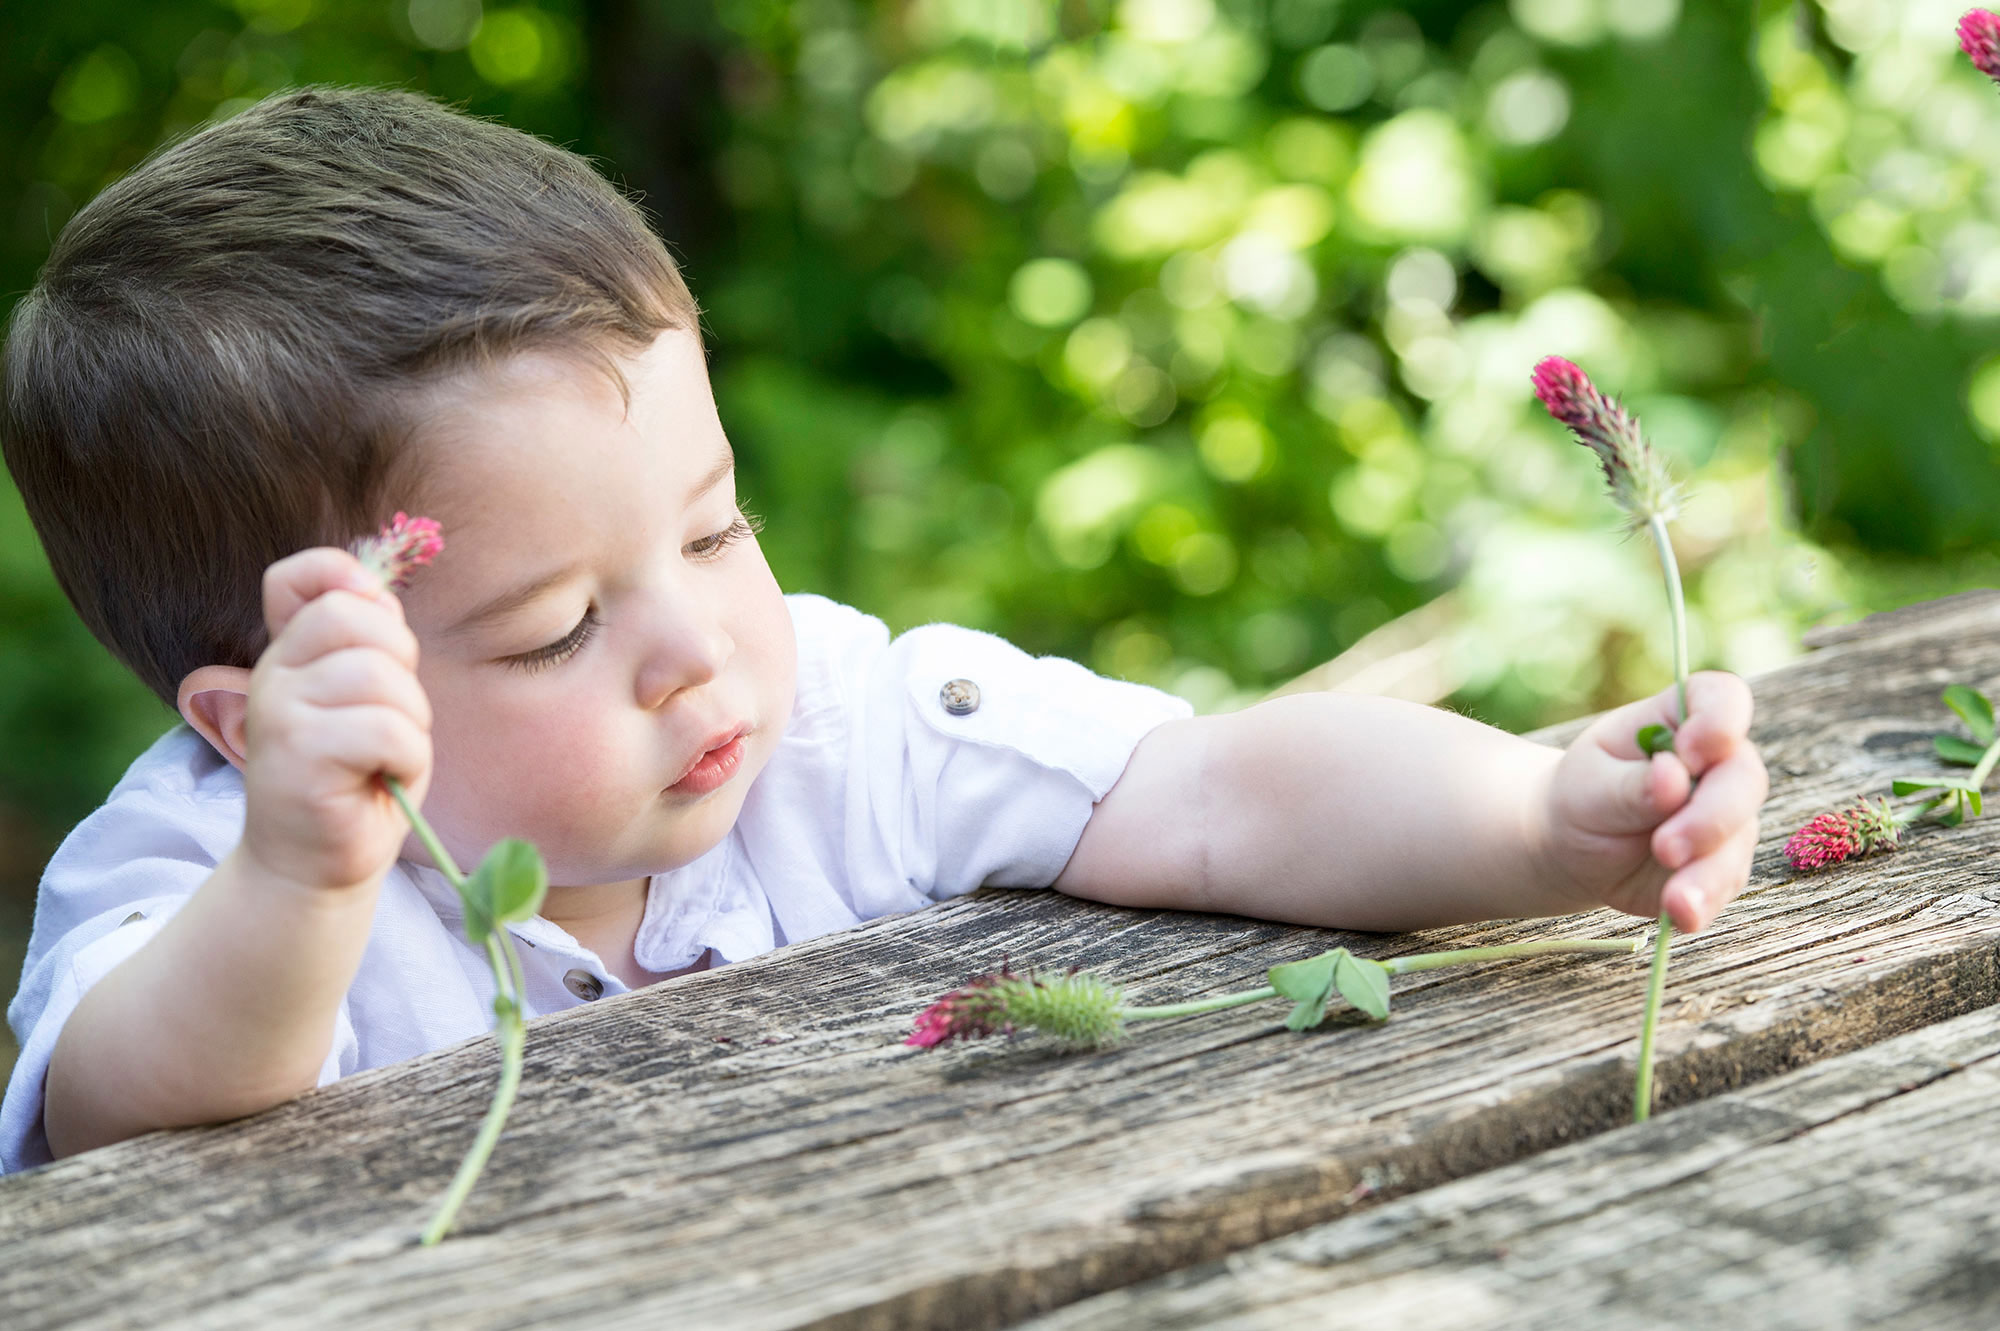 Boy being creative with field flowers